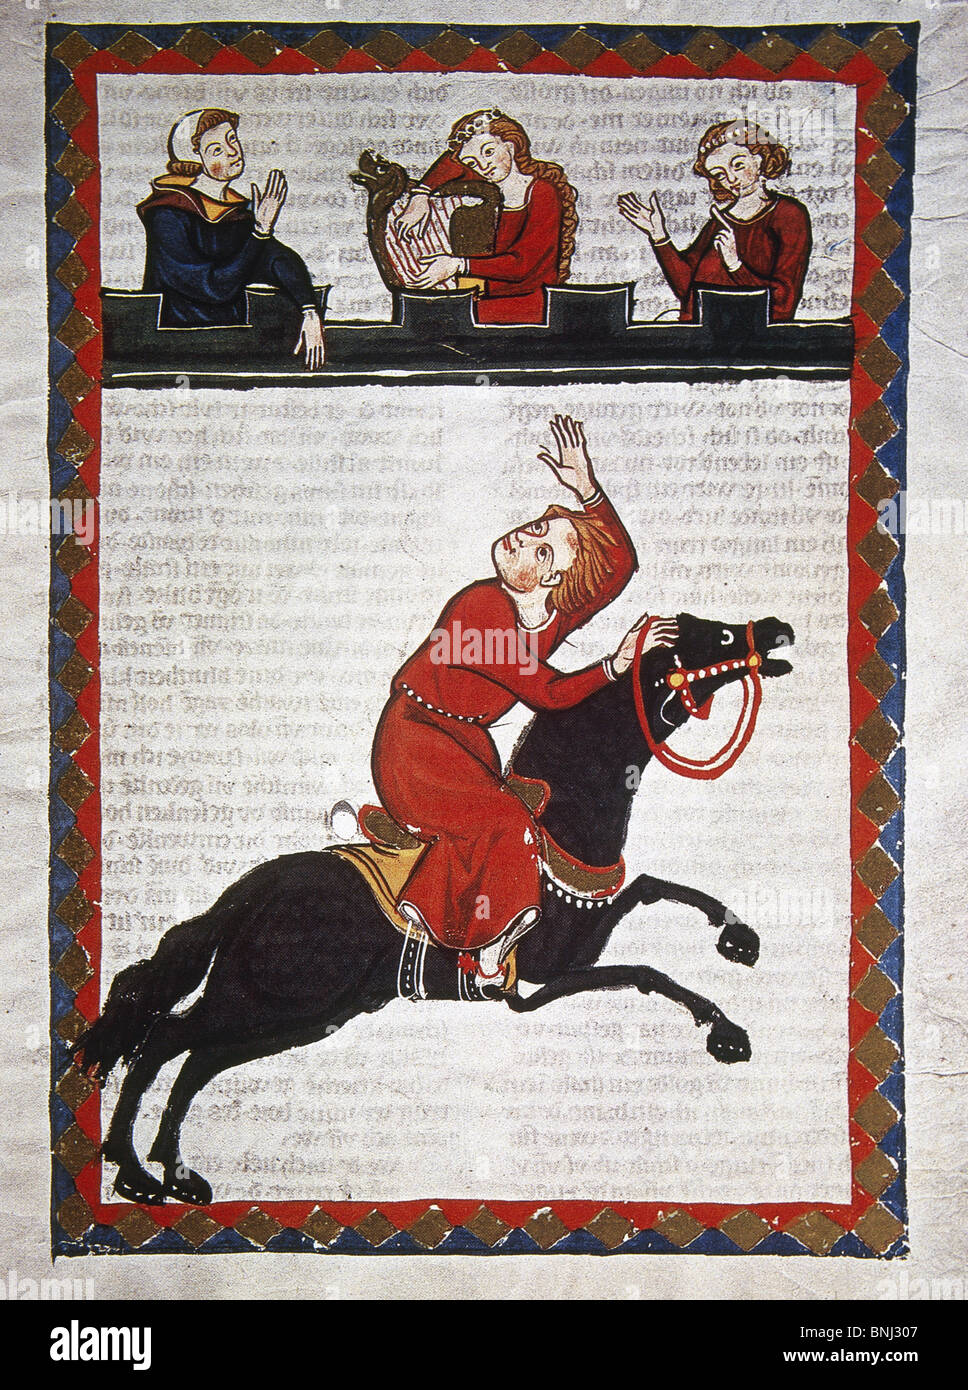 Der Wilde Alexander, poet of the 13th century, greets his beloved while he's riding. Codex Manesse. - Stock Image